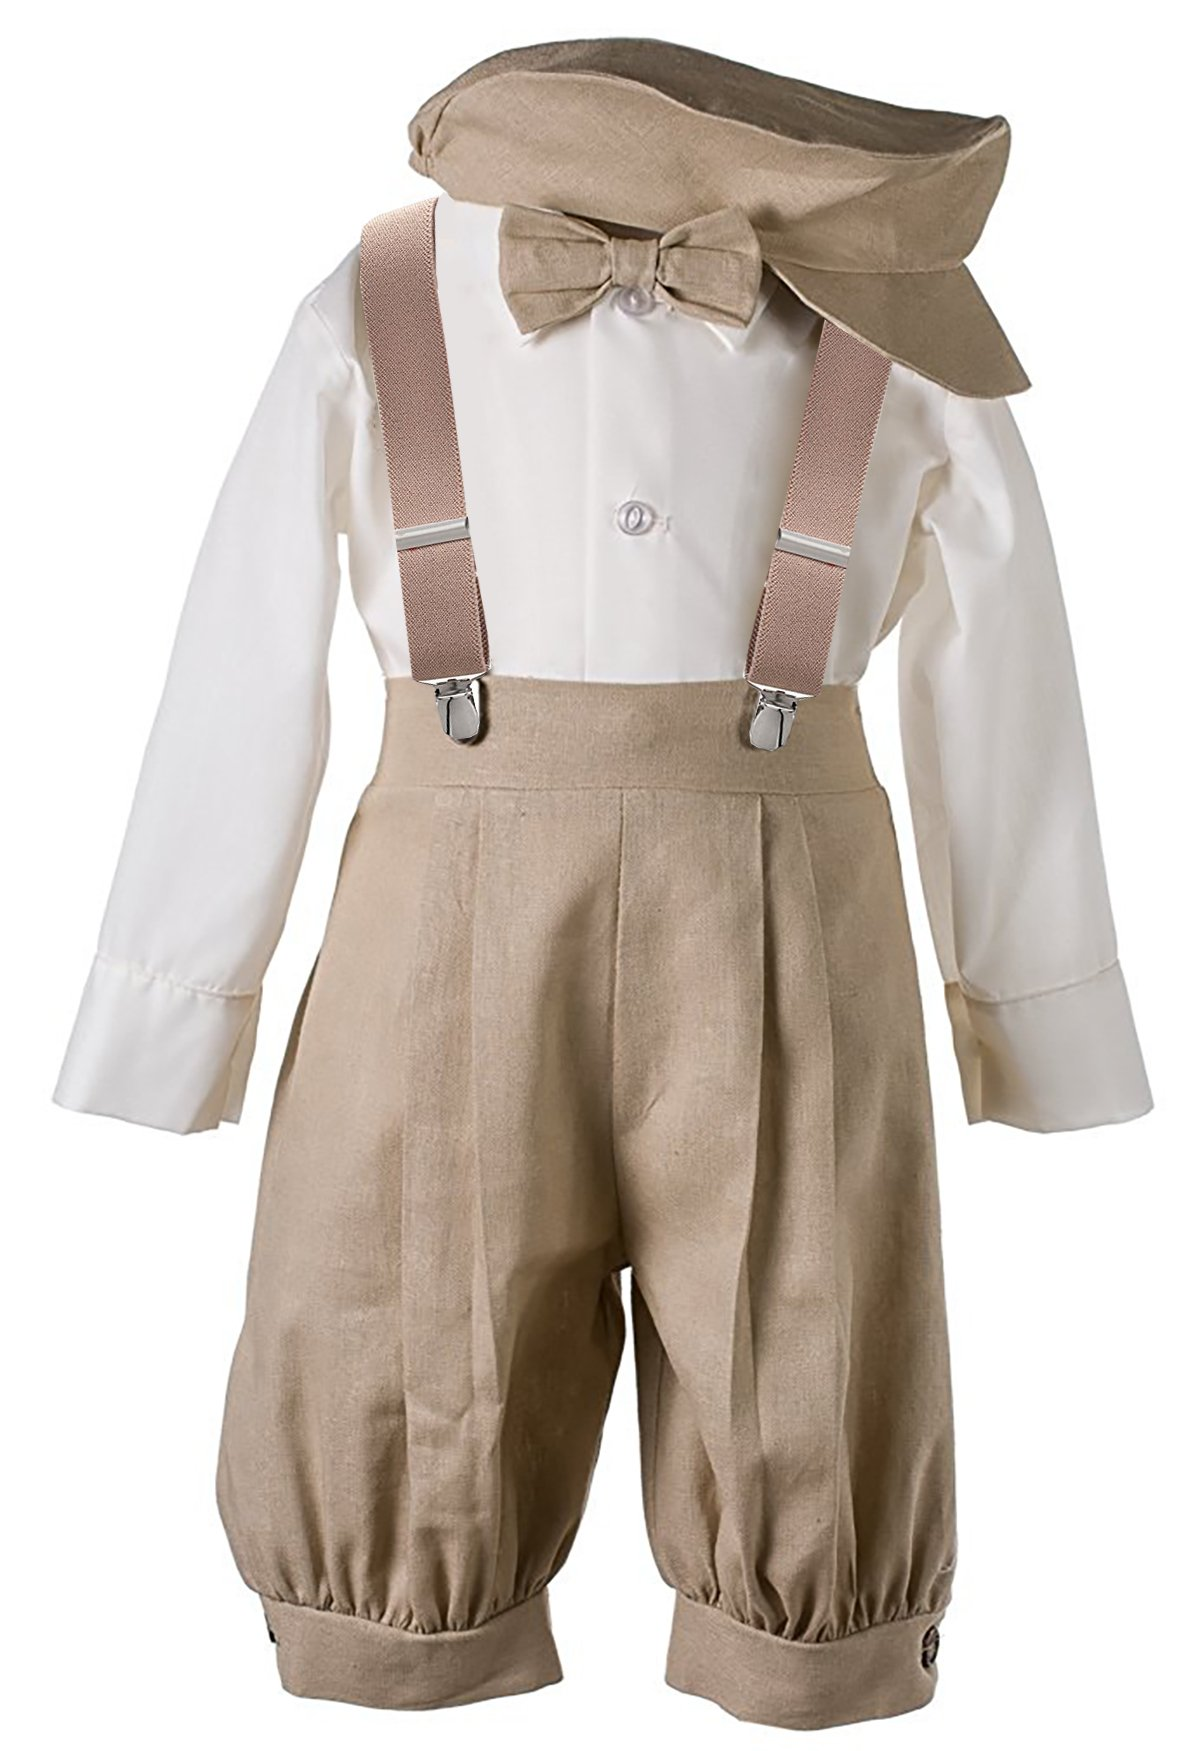 Vintage Baby Toddler Boys Knickers Suit Set Tan 24M/2T by AMK